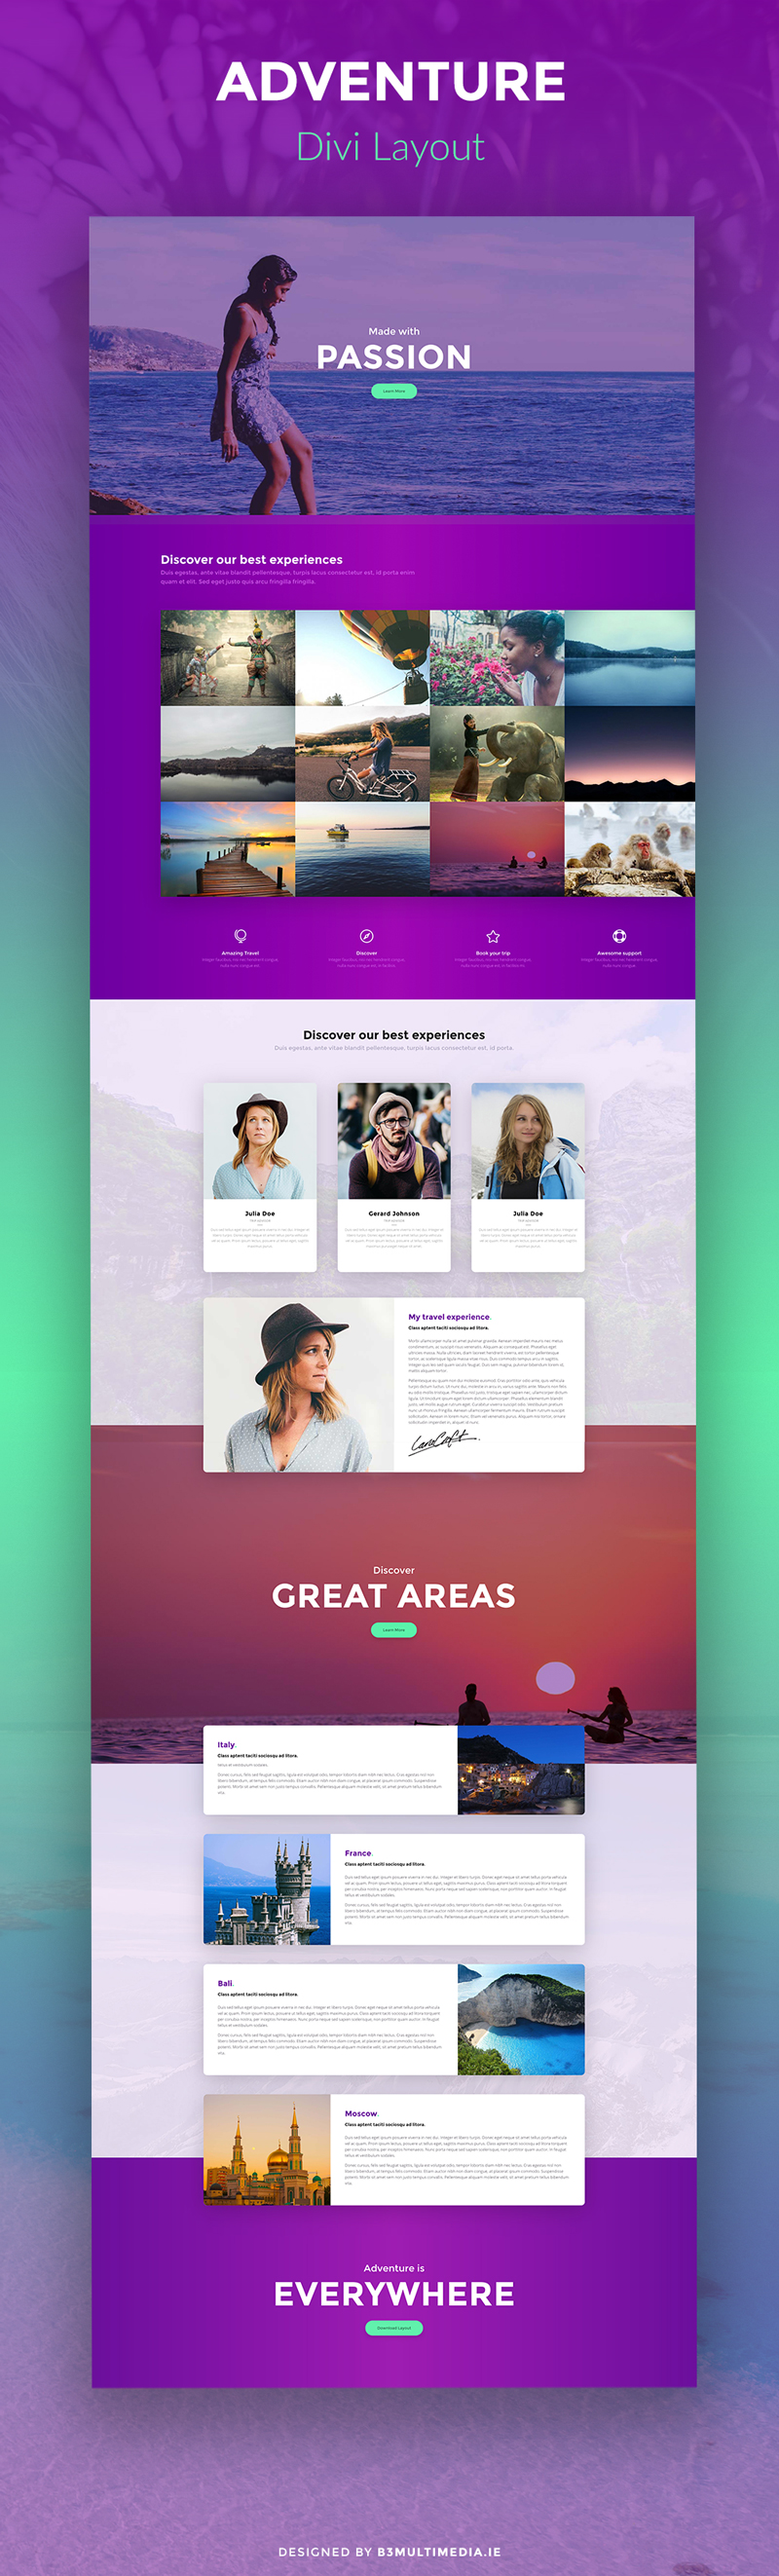 Adventure divi layout best of websites pinterest layout